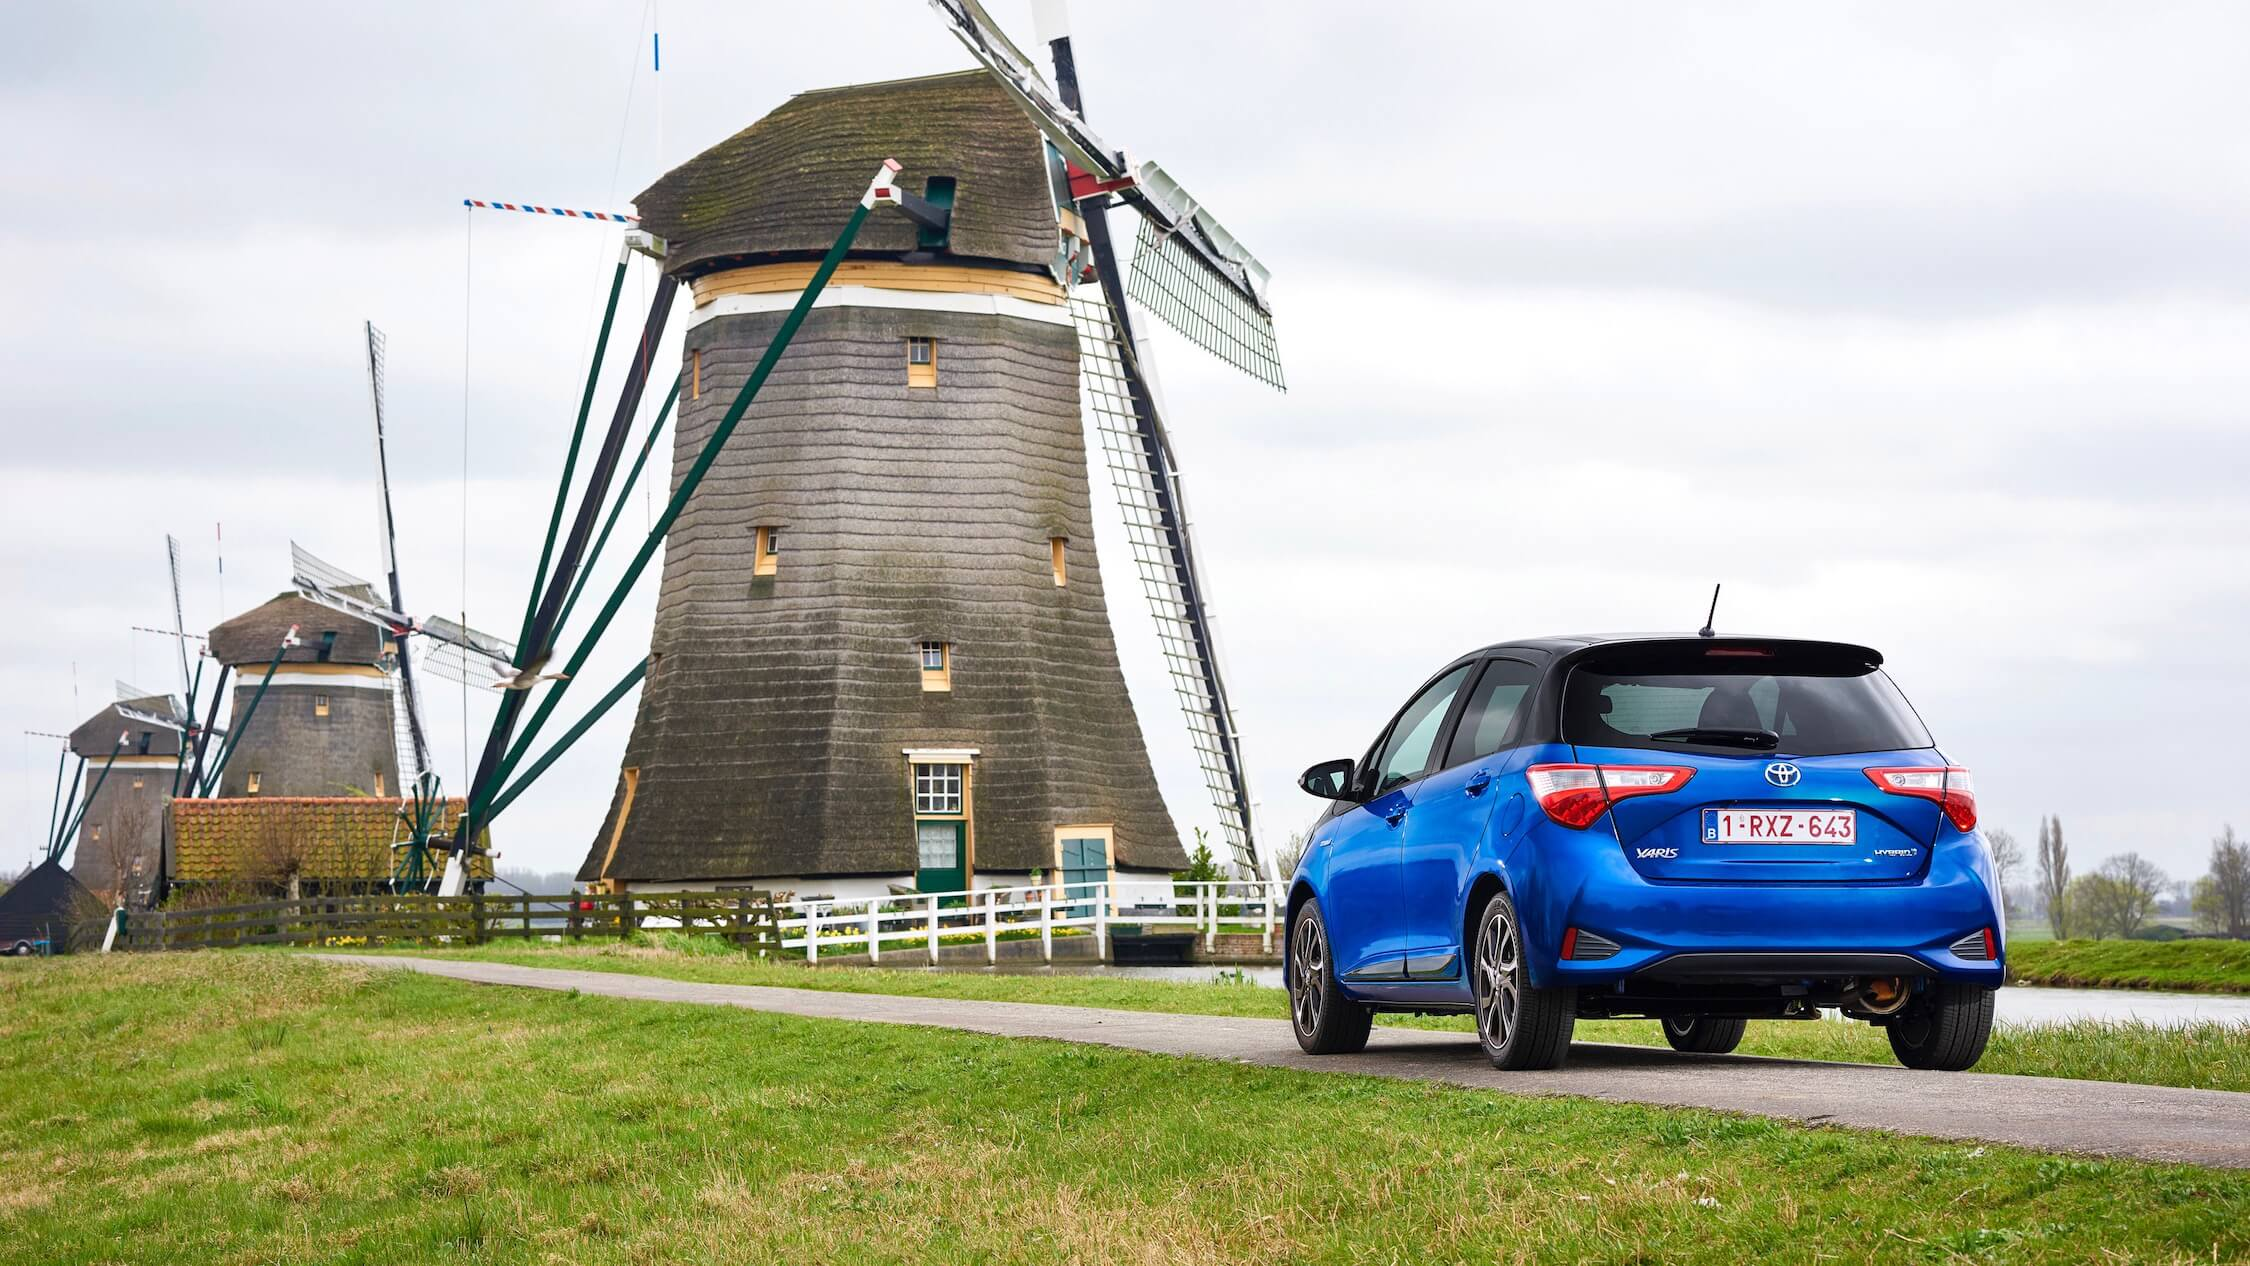 Toyota Yaris and windmill